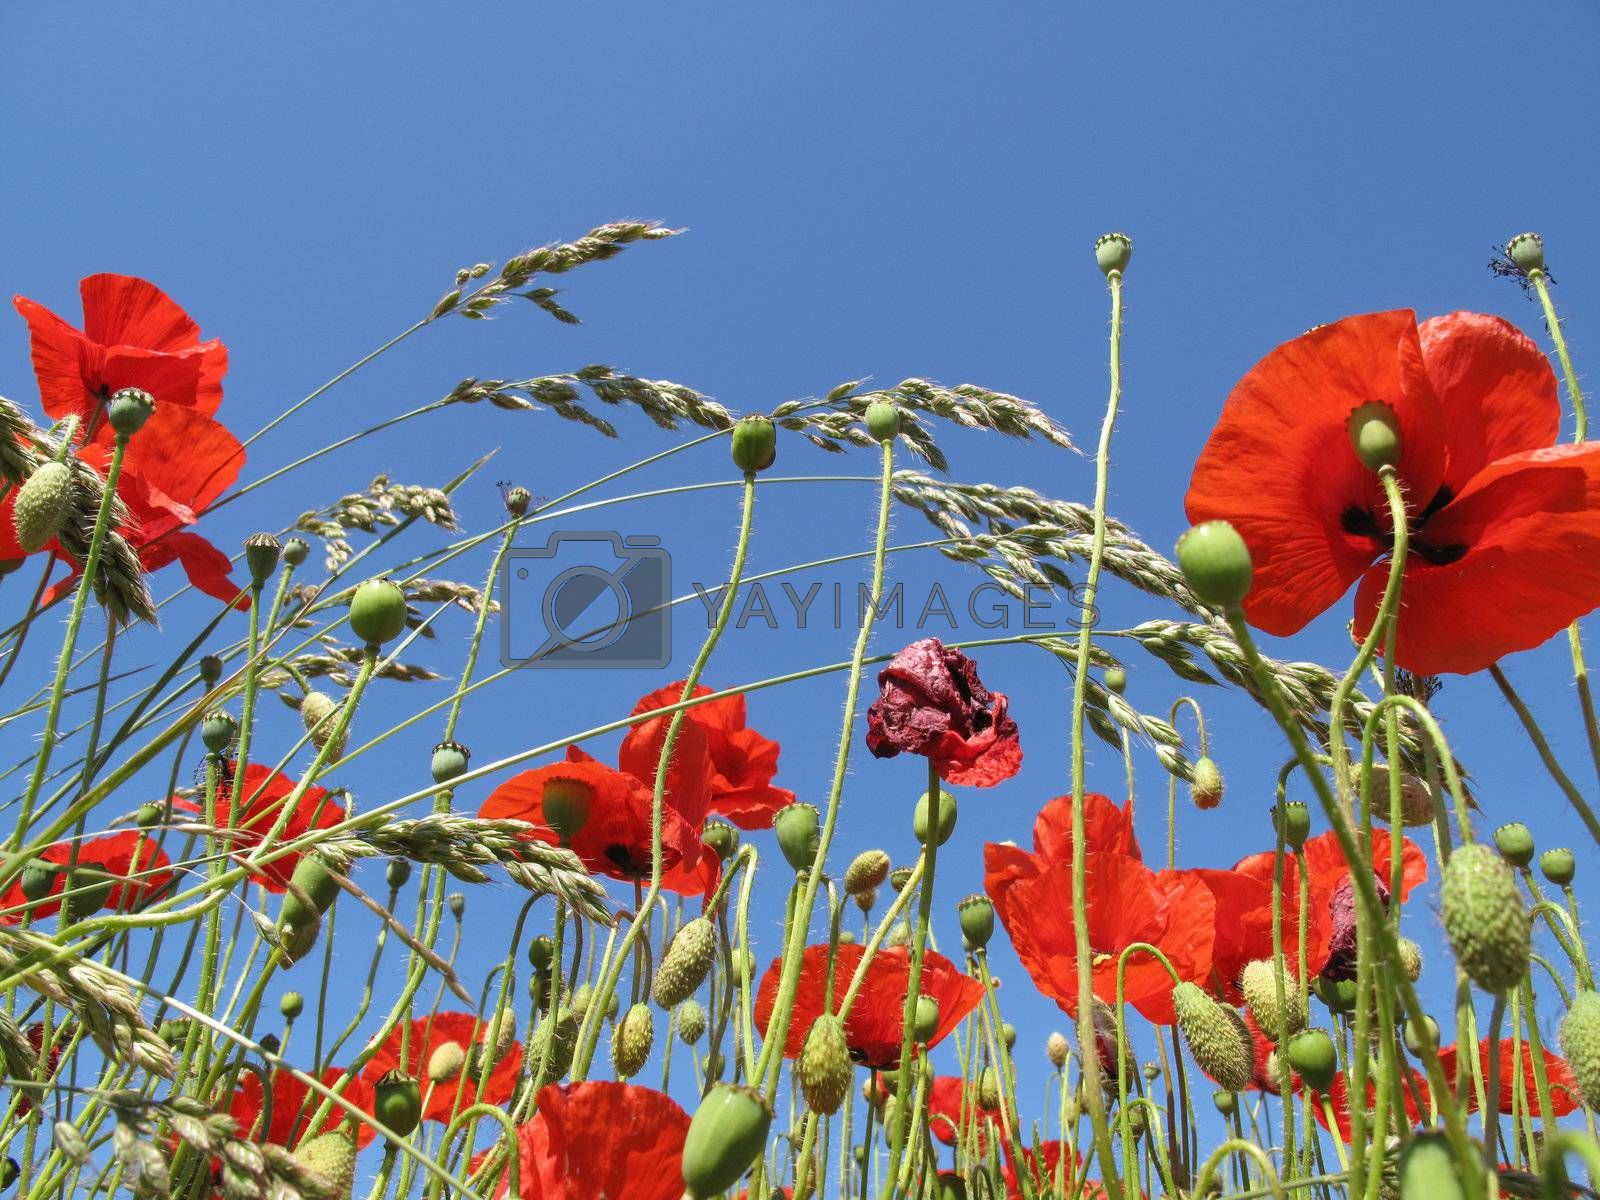 Poppies in a summer field.